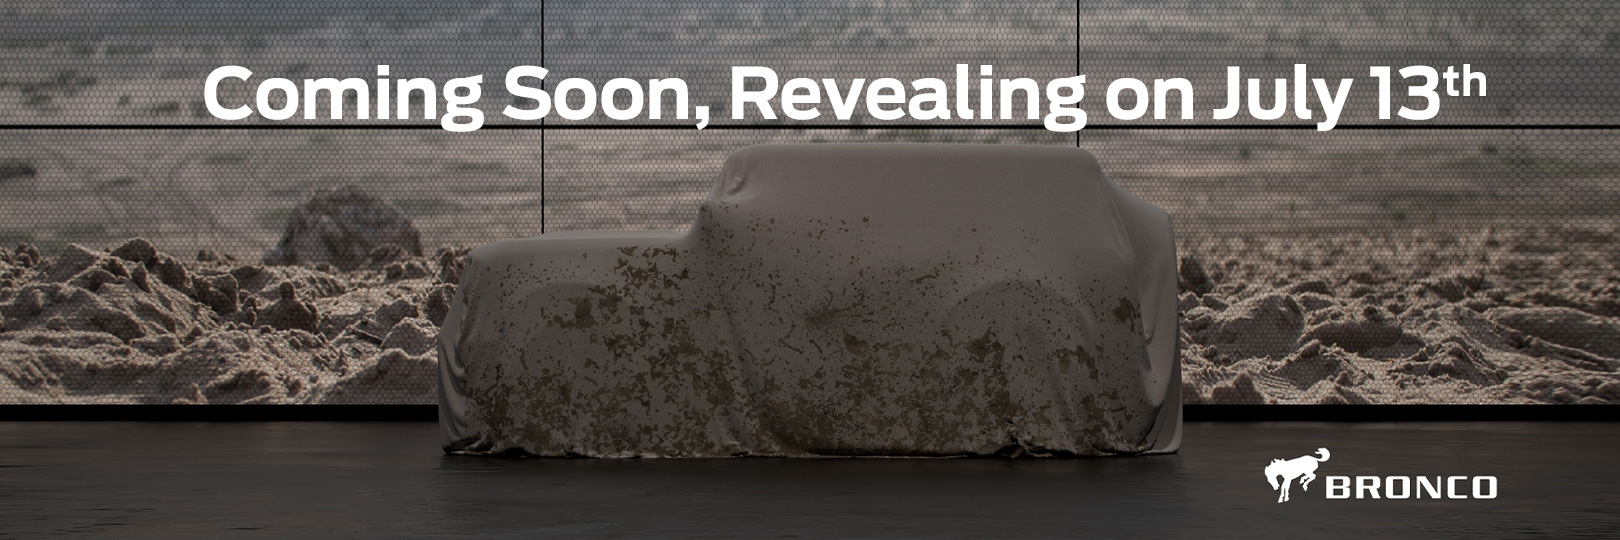 2020 Ford Bronco Coming Soon to Pompano Beach, FL, Close to Fort Lauderdale